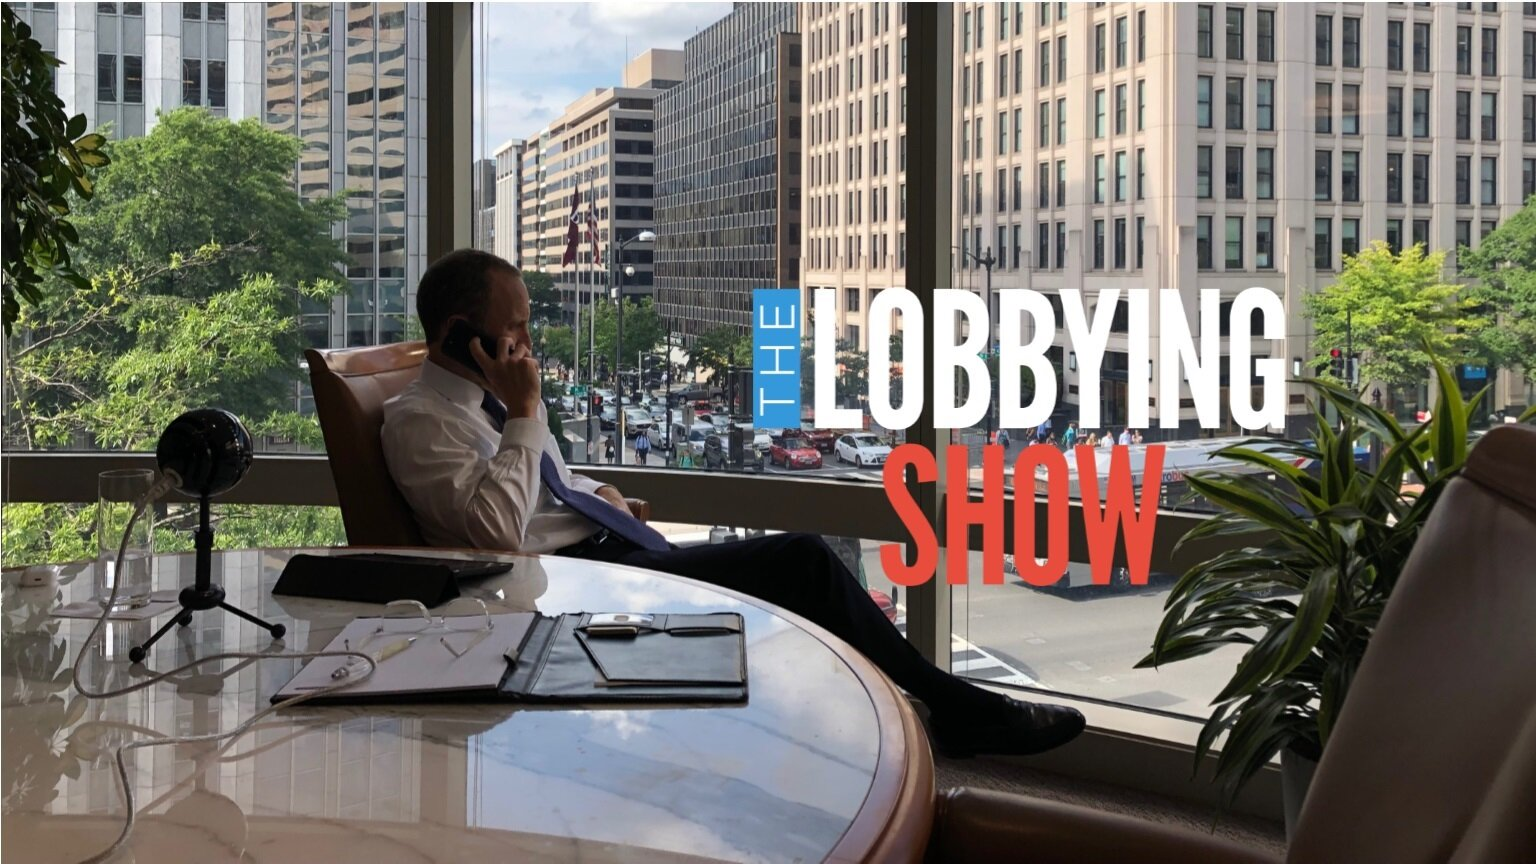 The Lobbying Show - A podcast about the world of lobbying: how it works, who's lobbying, and how to be effective. Each week, we interview government affairs professionals and lobbyists to get their perspective on the industry.Hosted by Veteran Connecticut-based Lobbyist Jim O'Brien.